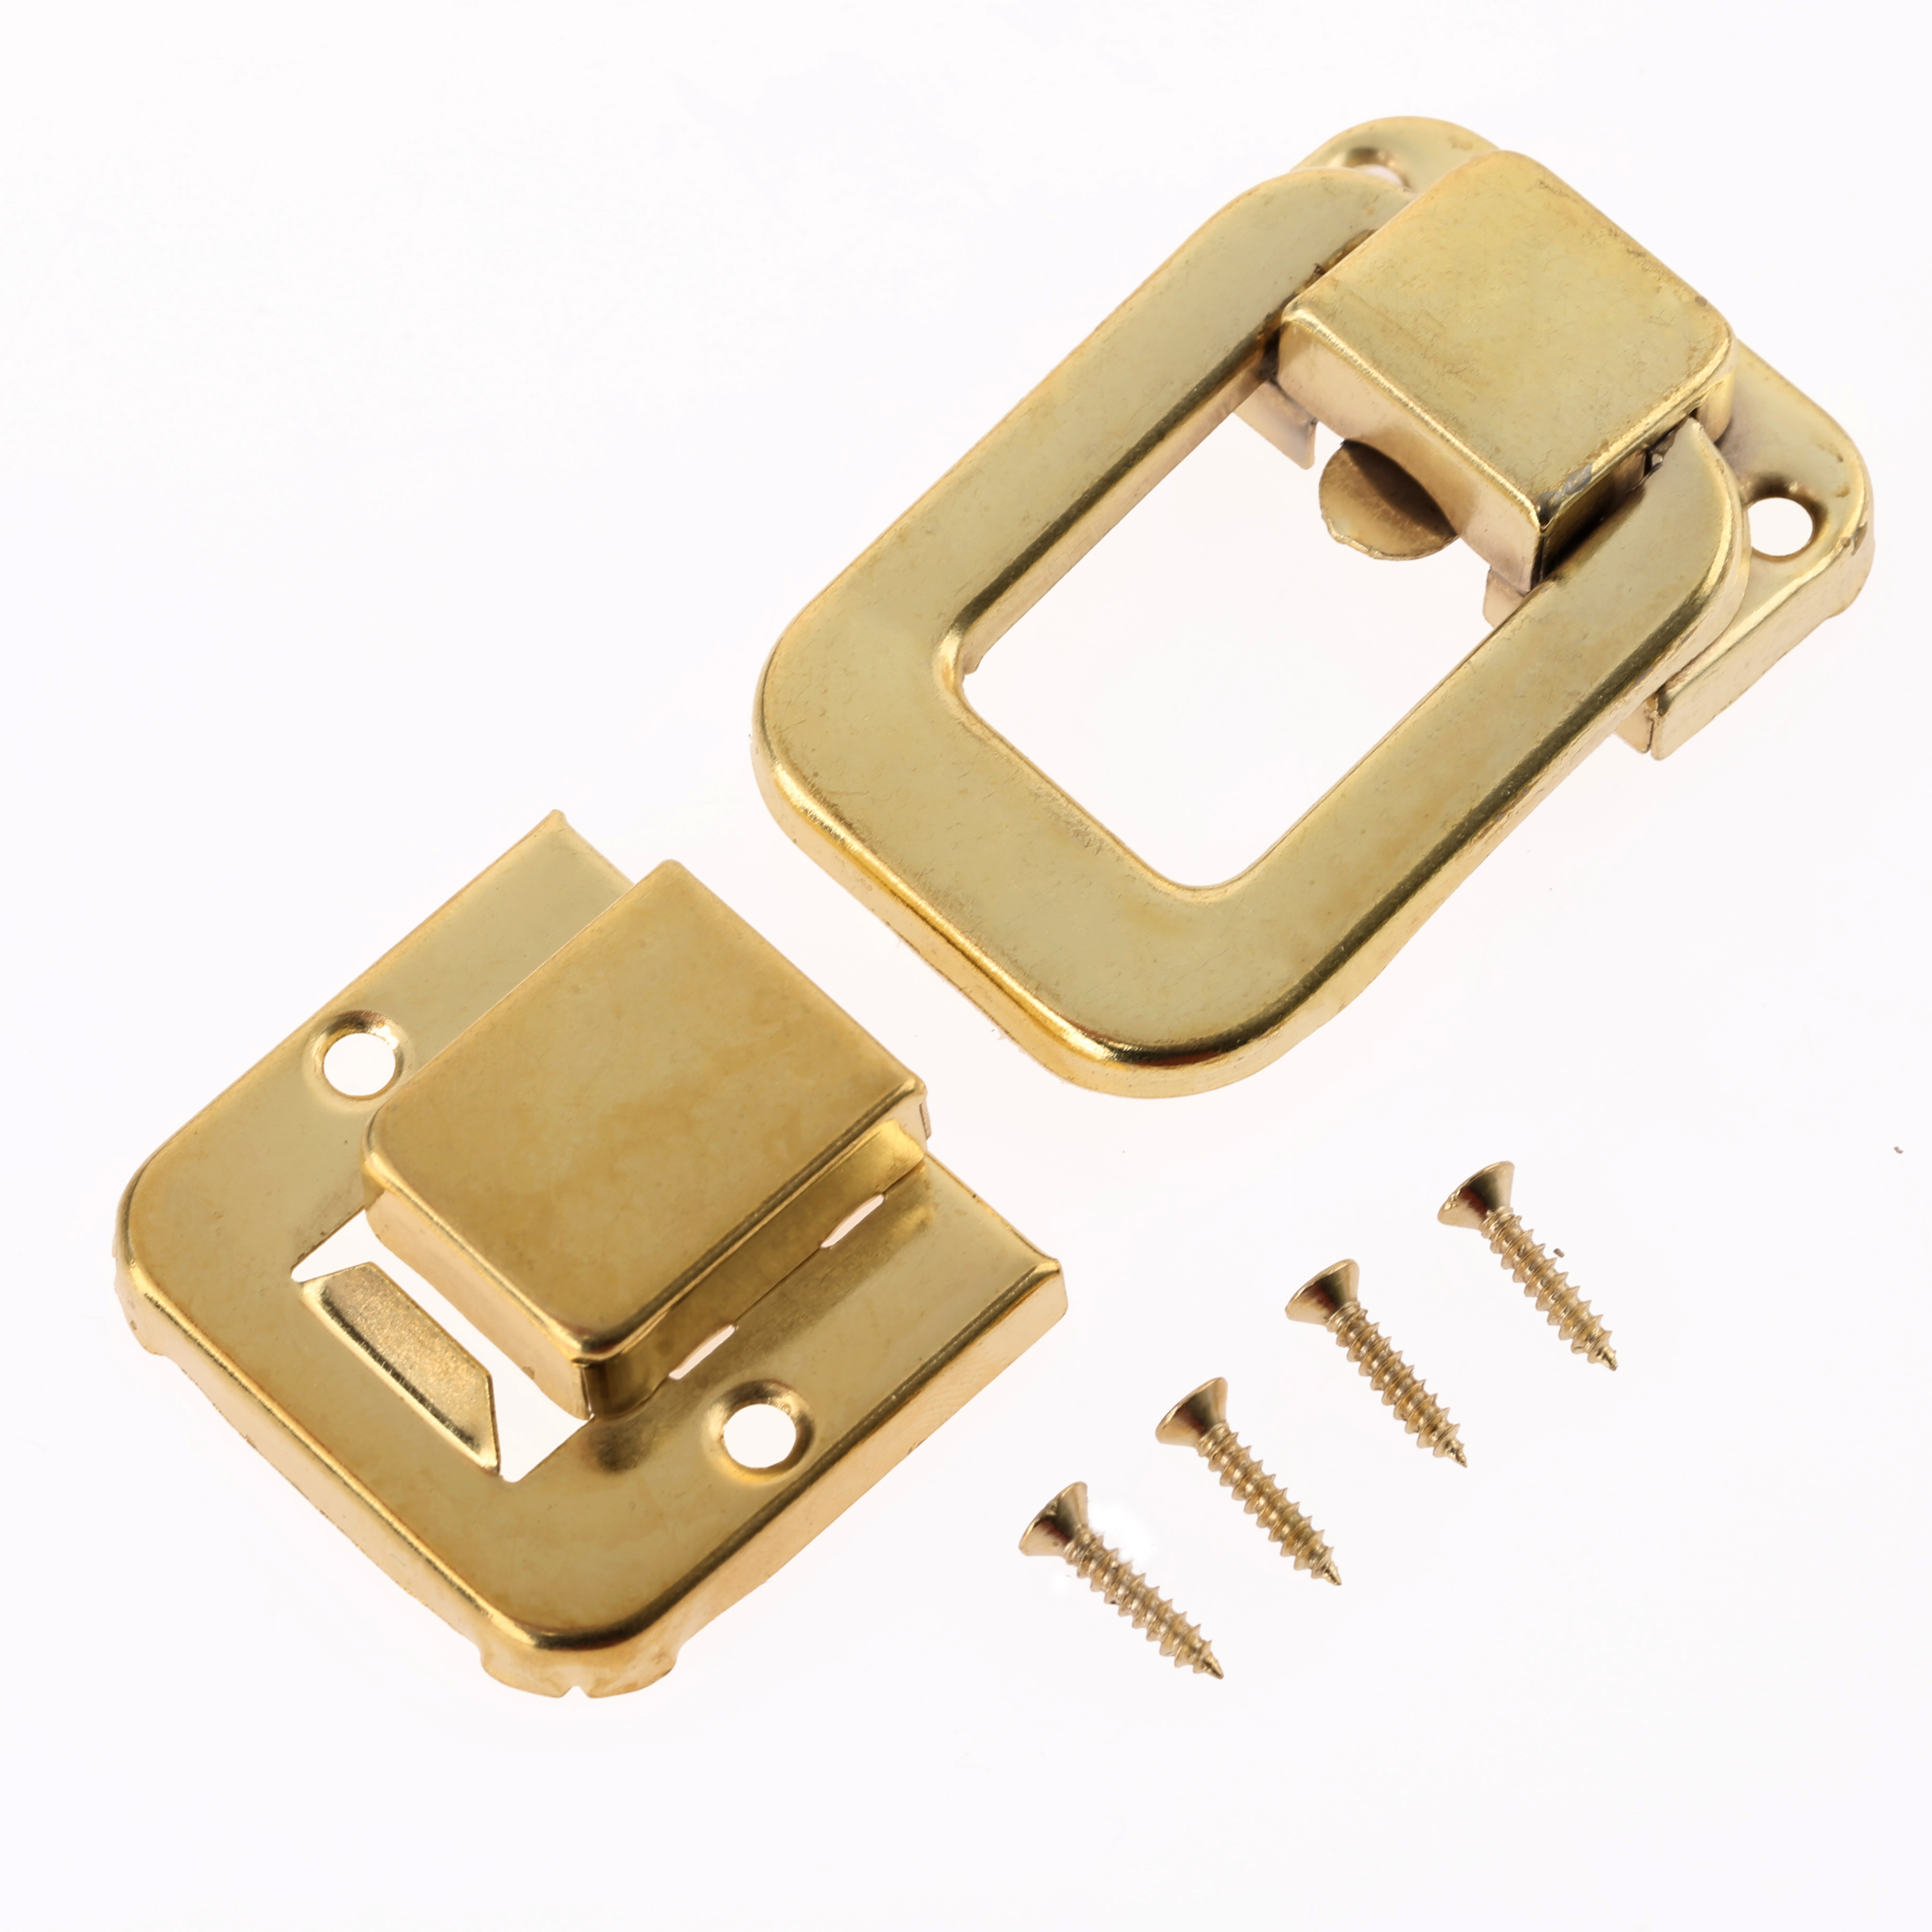 1Pc Antique Gold Box Latches Decorative Hasp Jewelry